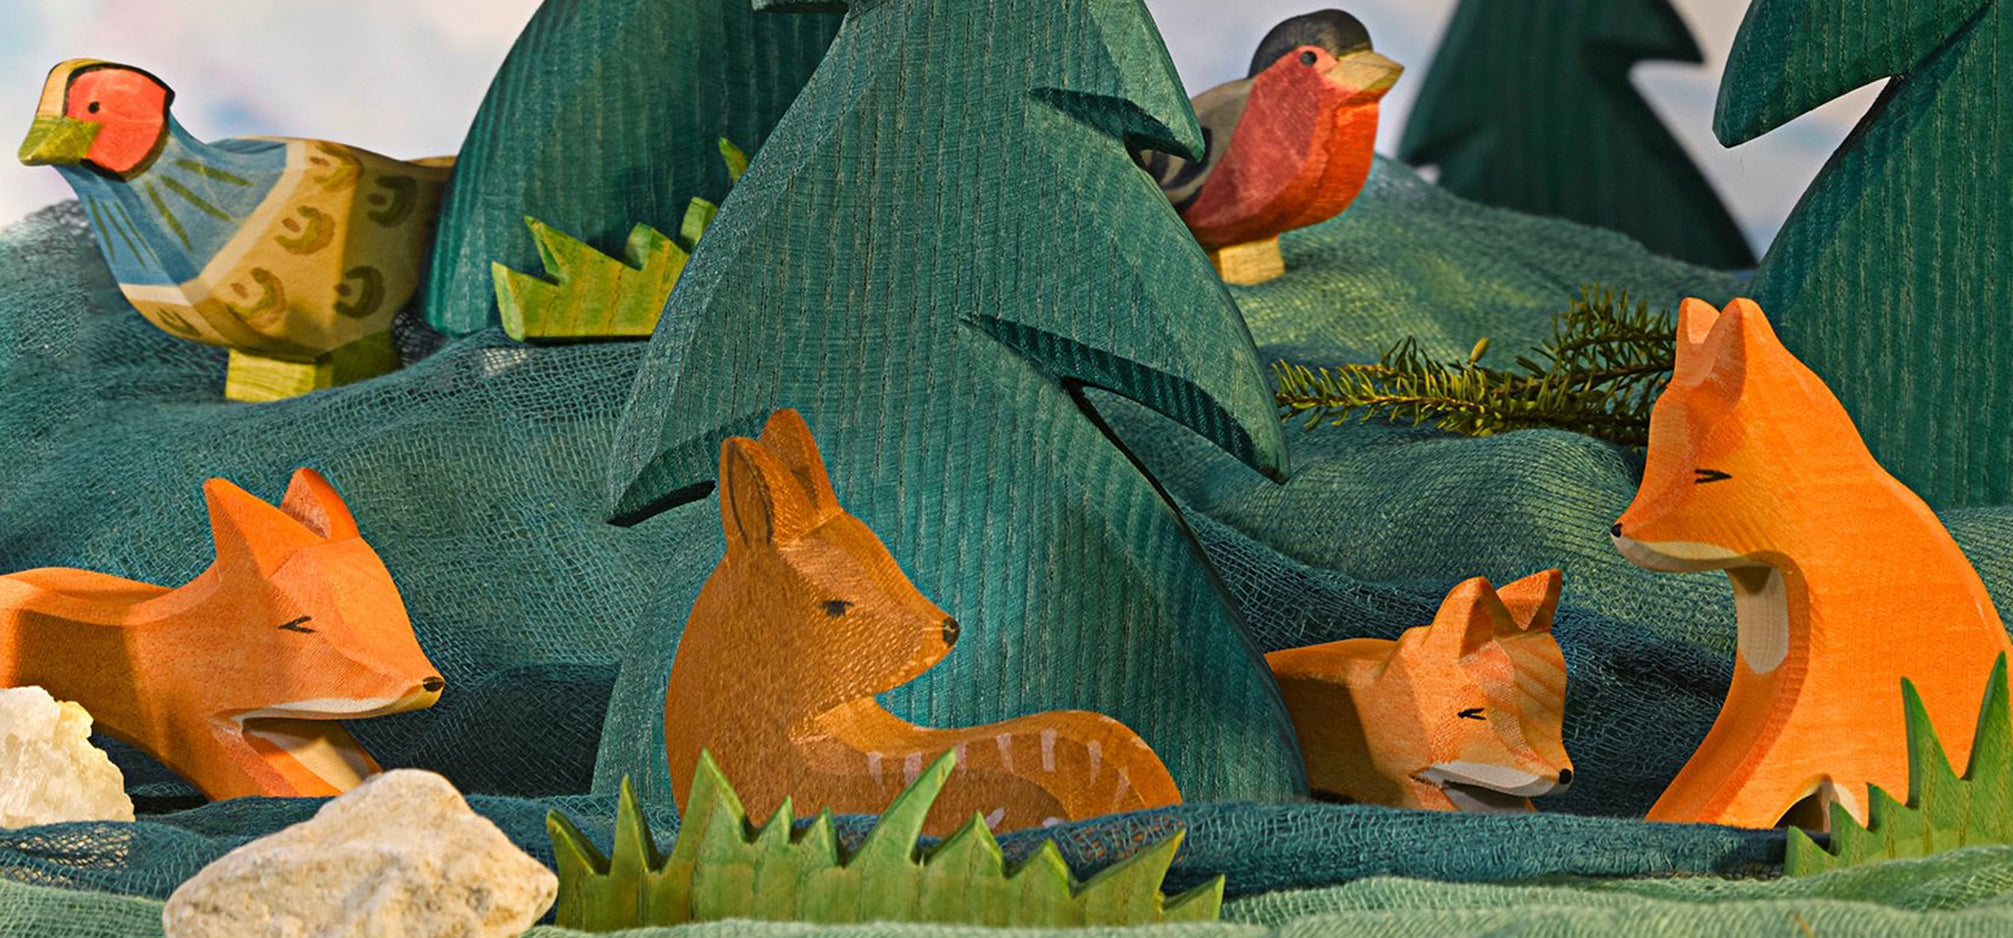 Carved and painted wooden animal figurines and trees.